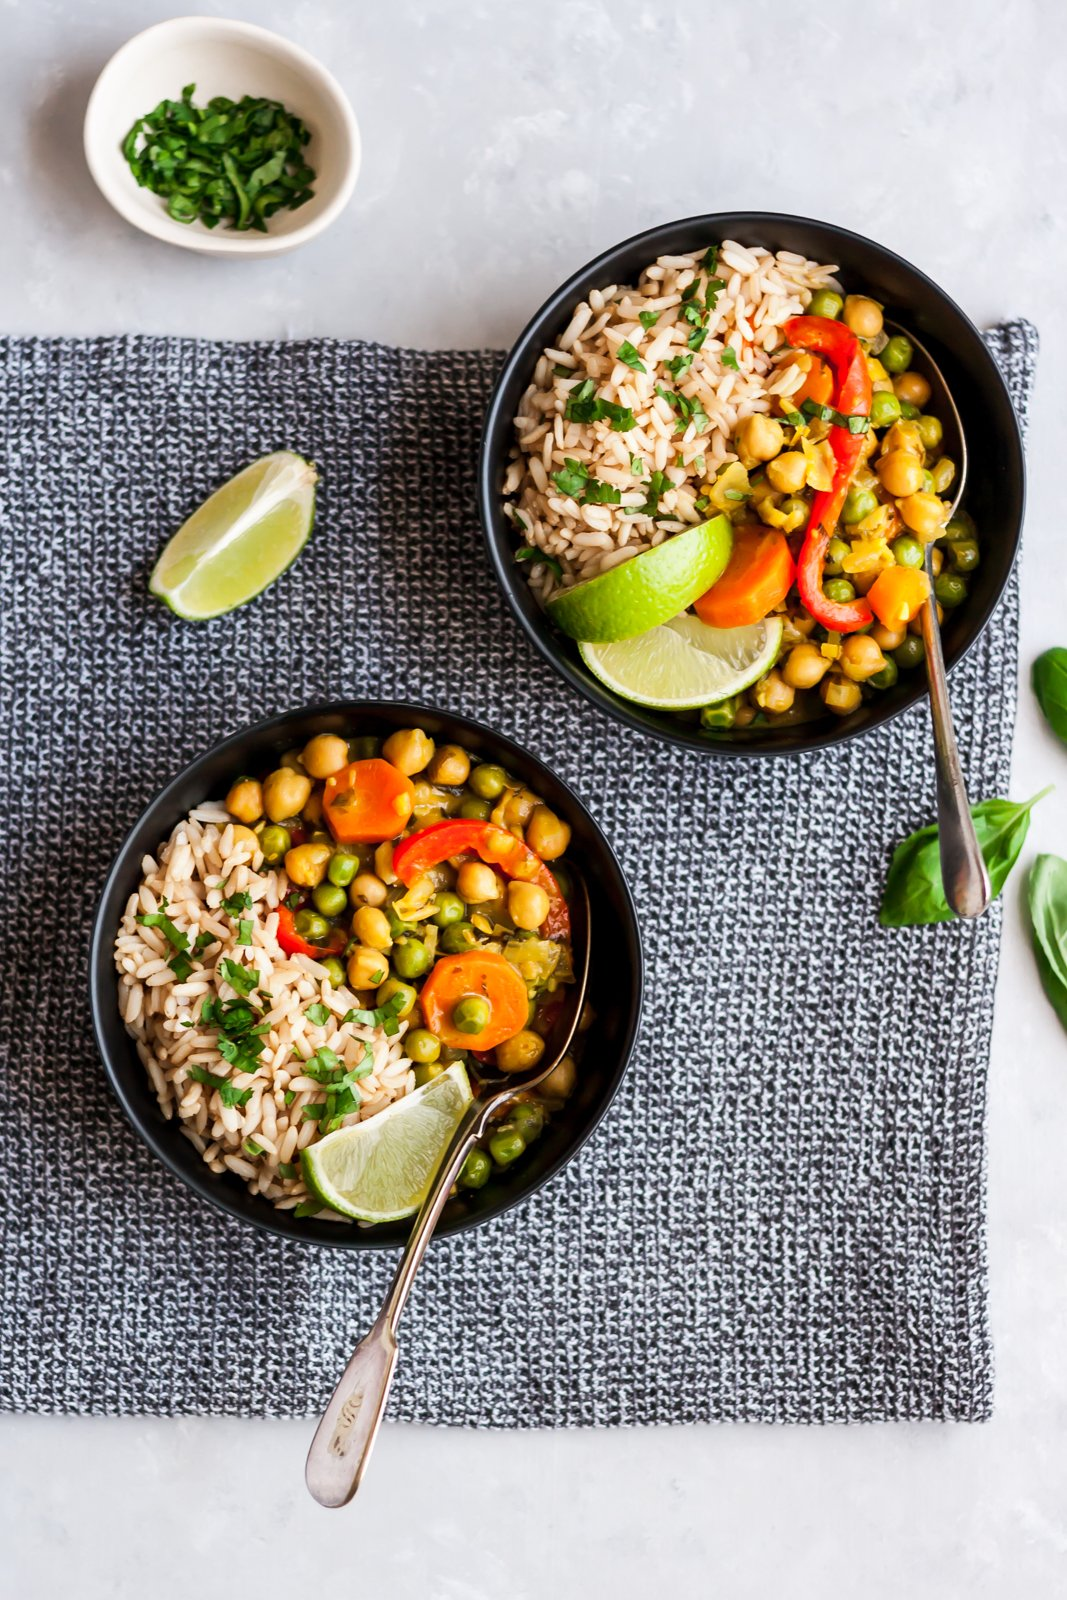 lemongrass chickpea thai green curry in two bowls with rice